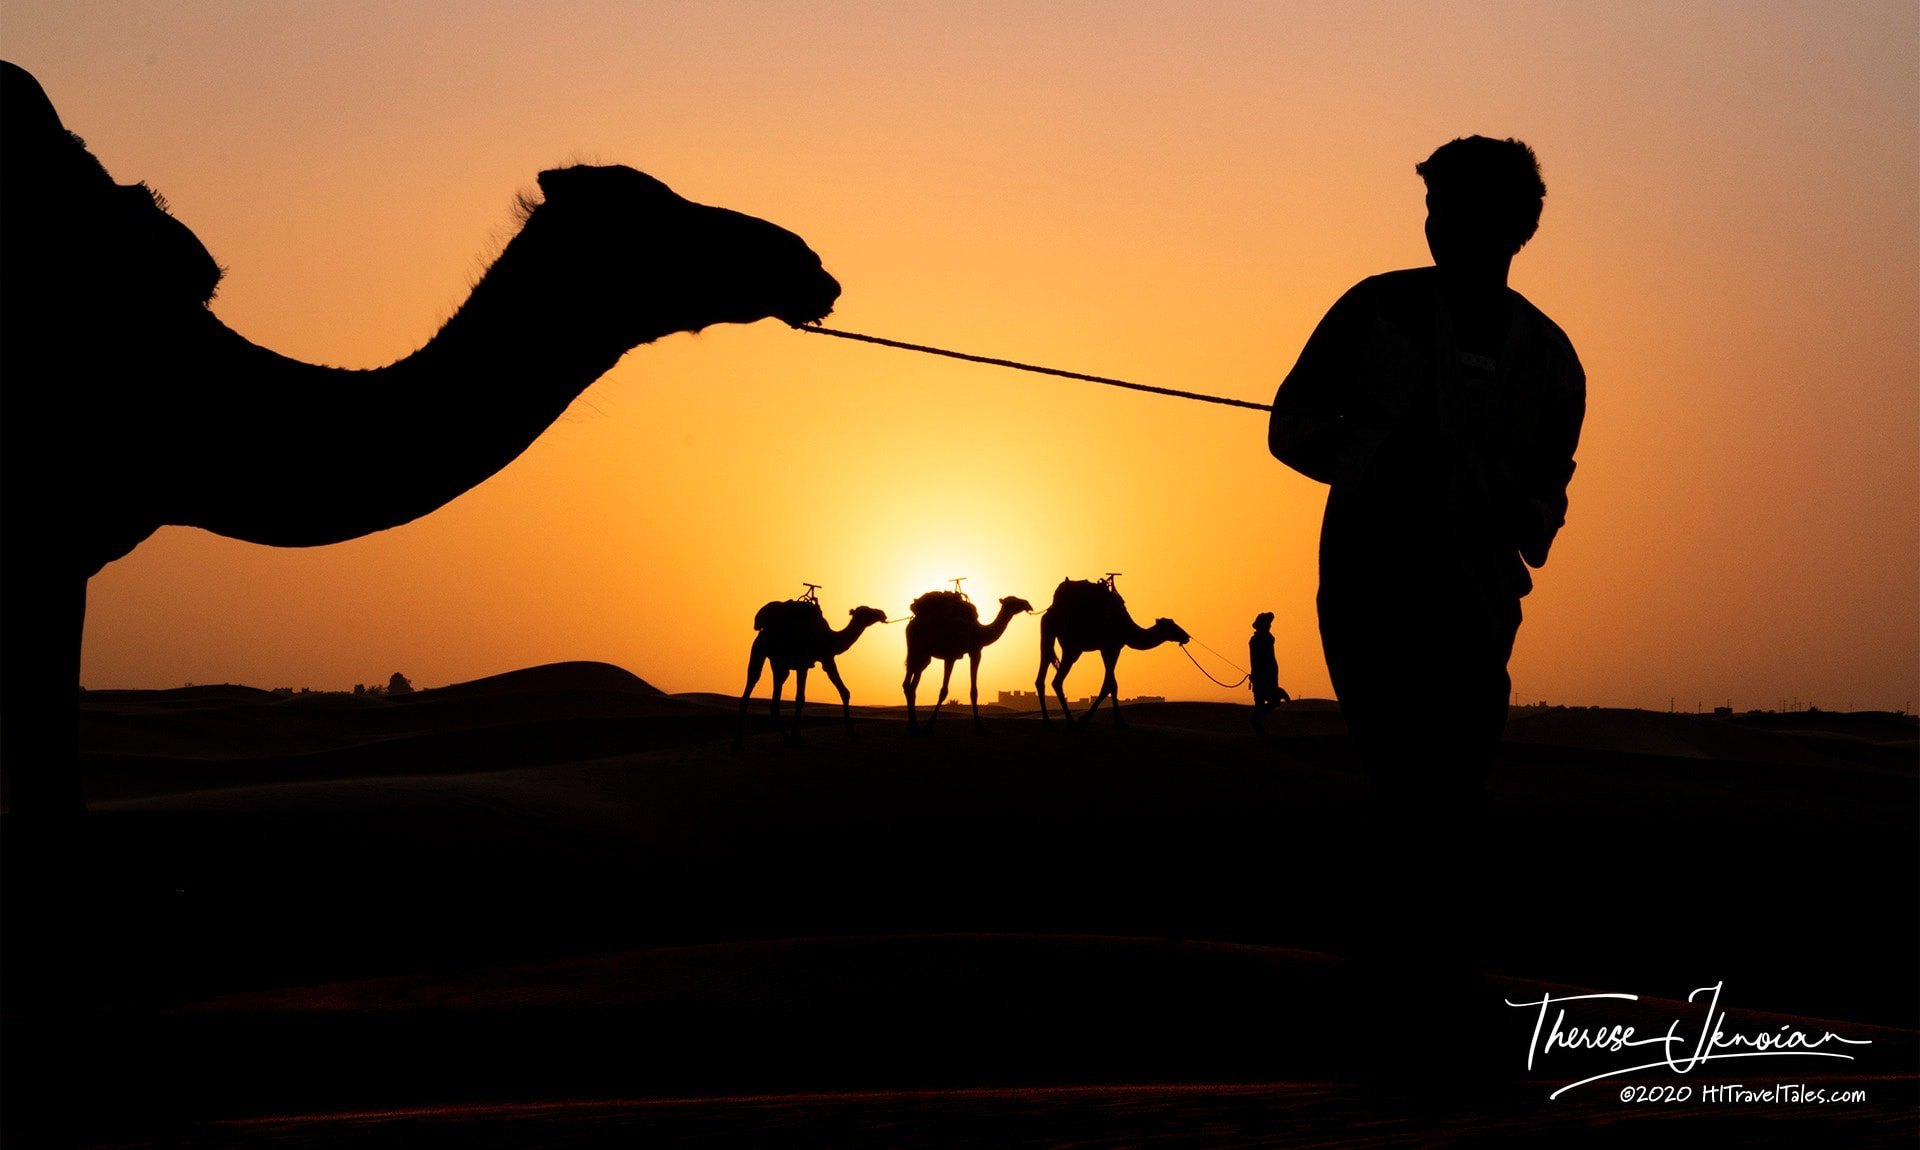 Camel Silhouette Sahara Washington Post Travel Photo Contest Award Winner